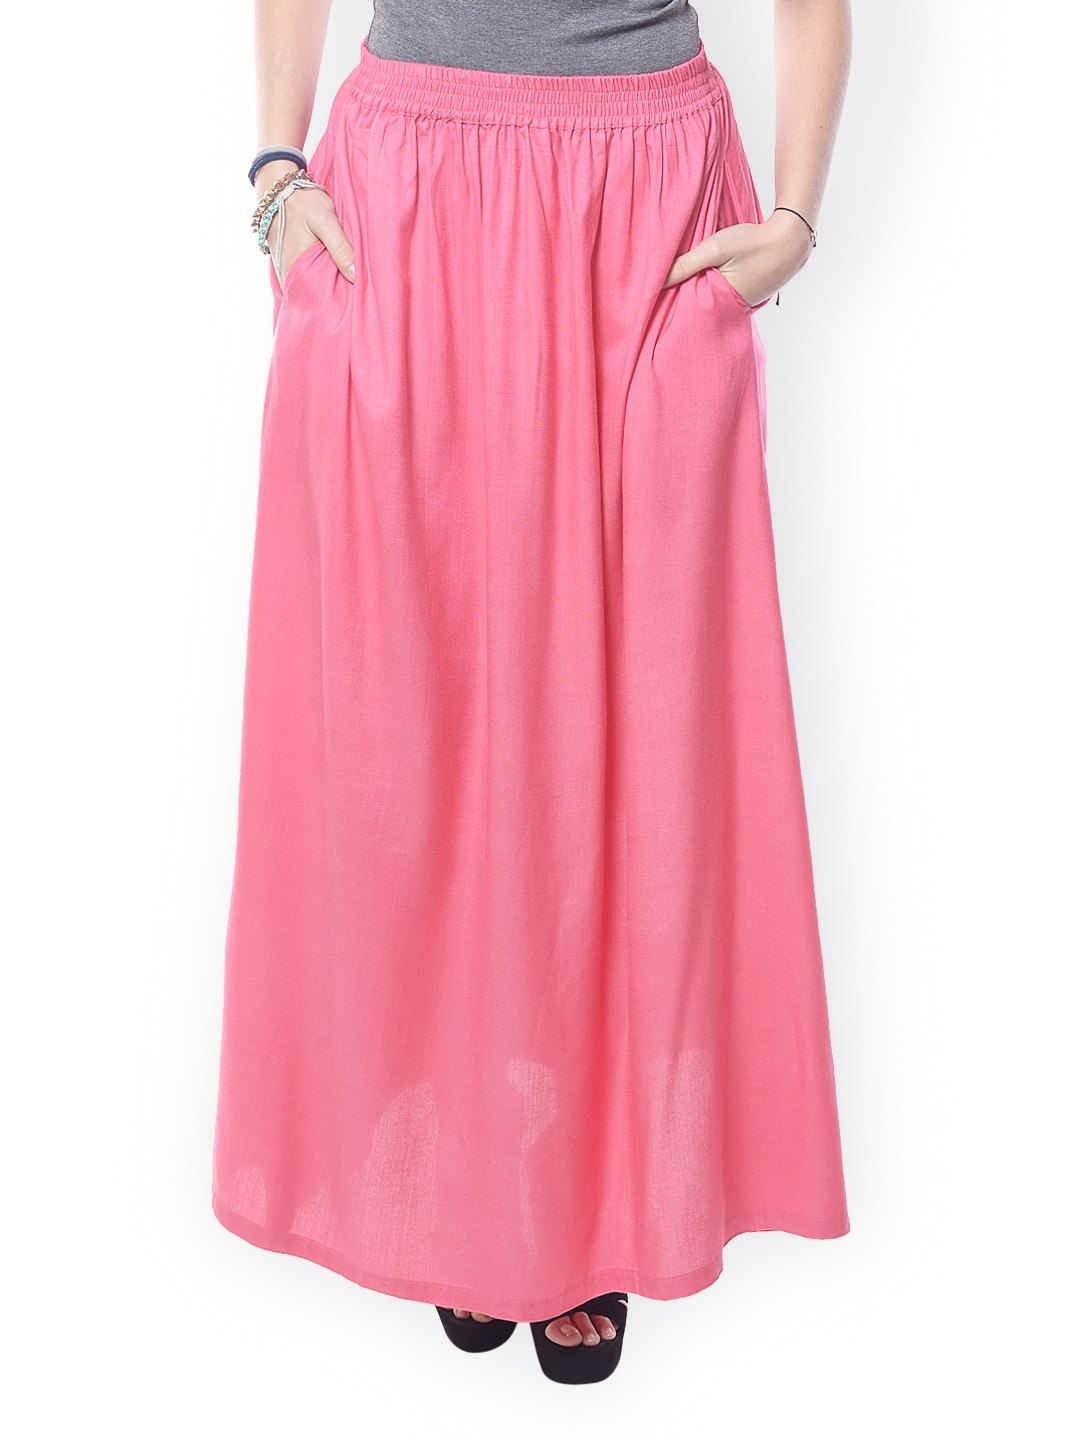 buy westhreads pink maxi skirt 304 apparel for